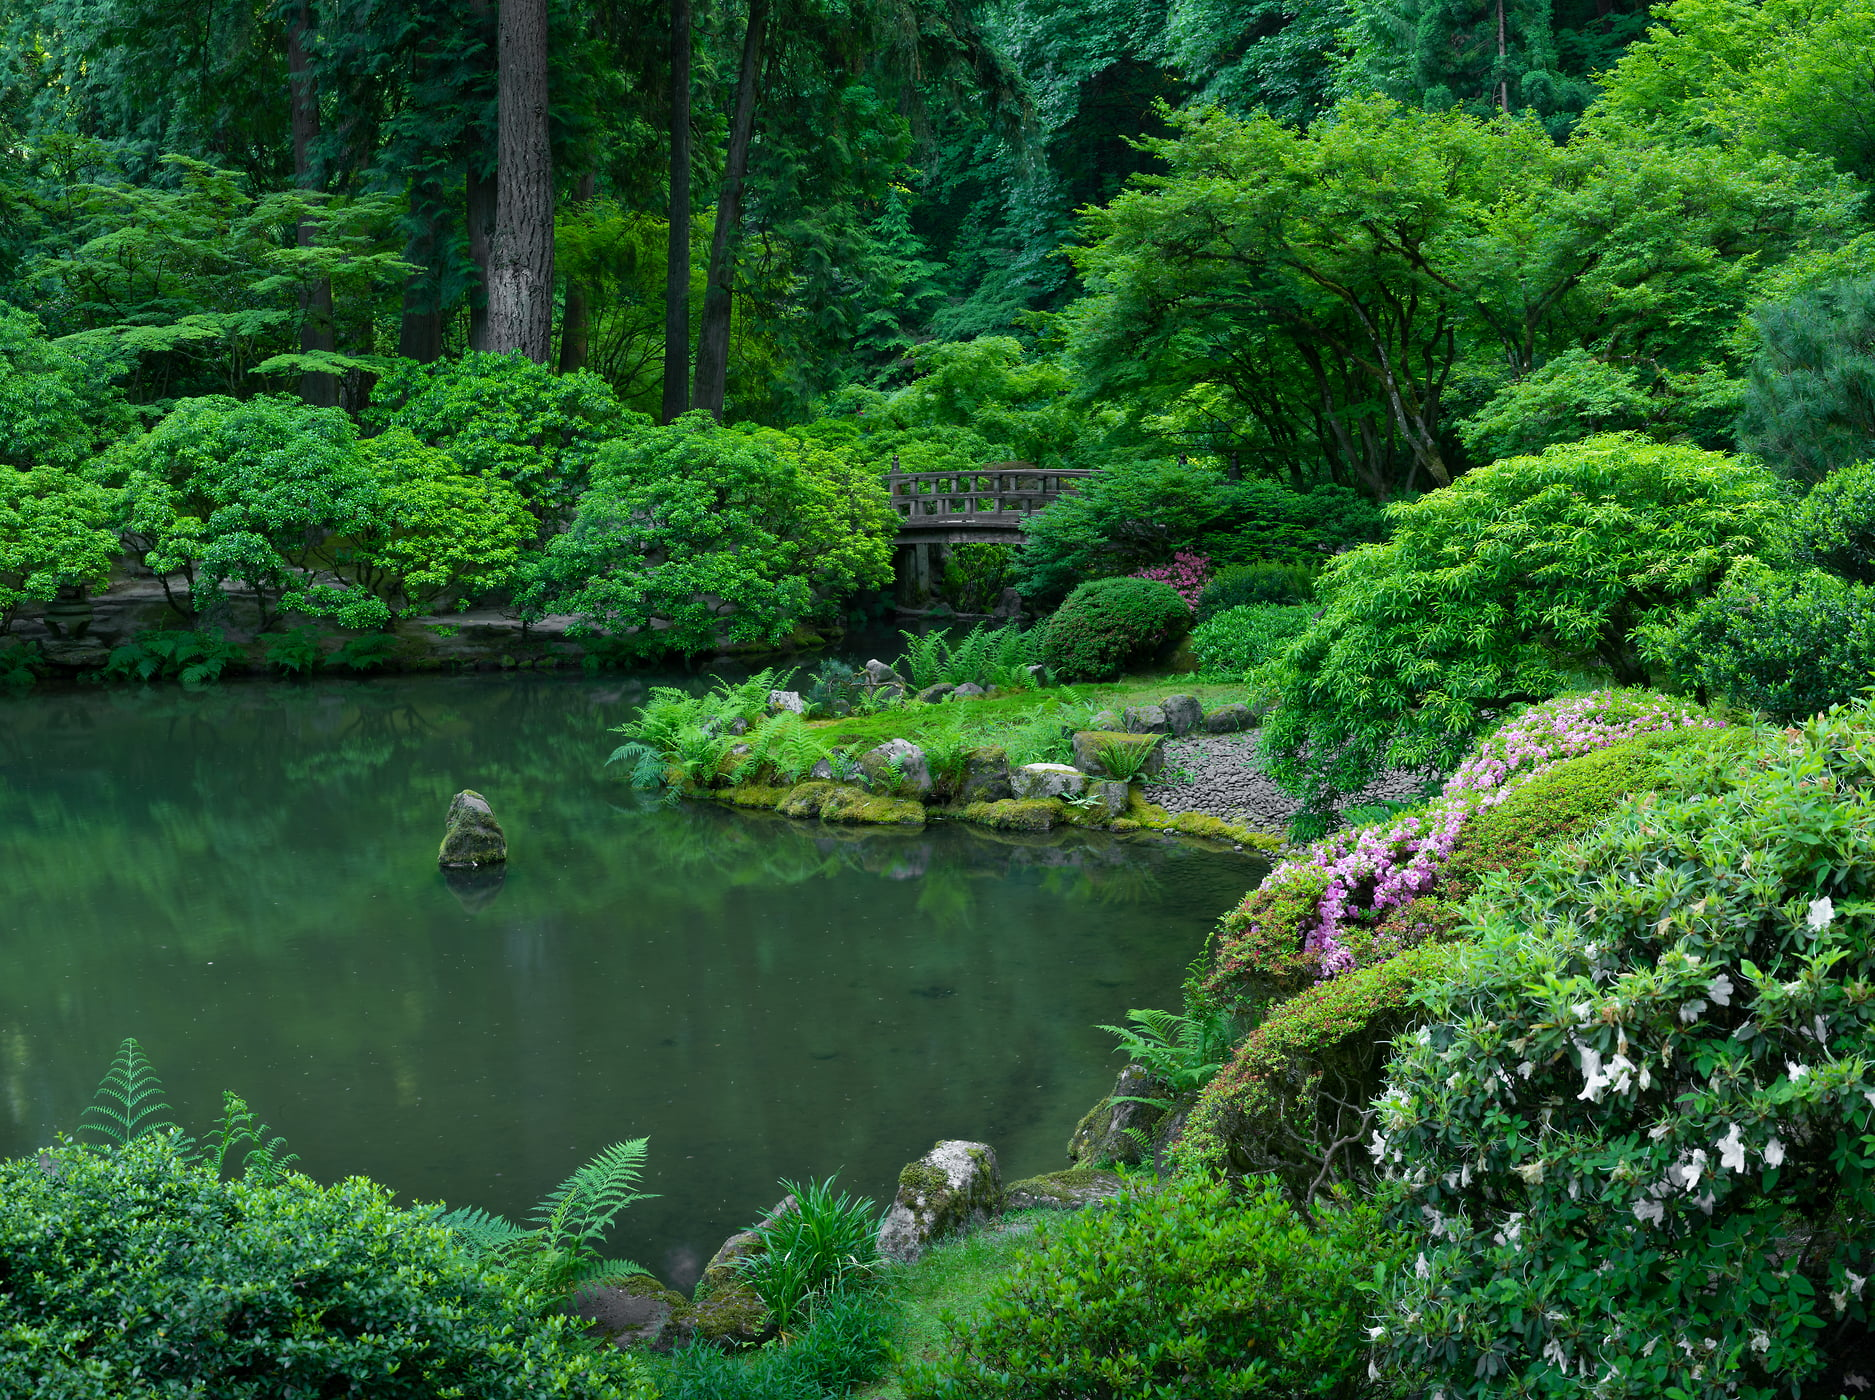 208 megapixels! A very high resolution, large-format VAST photo print of a garden pond with a bridge and forest; photograph created by Greg Probst in Portland Japanese Garden